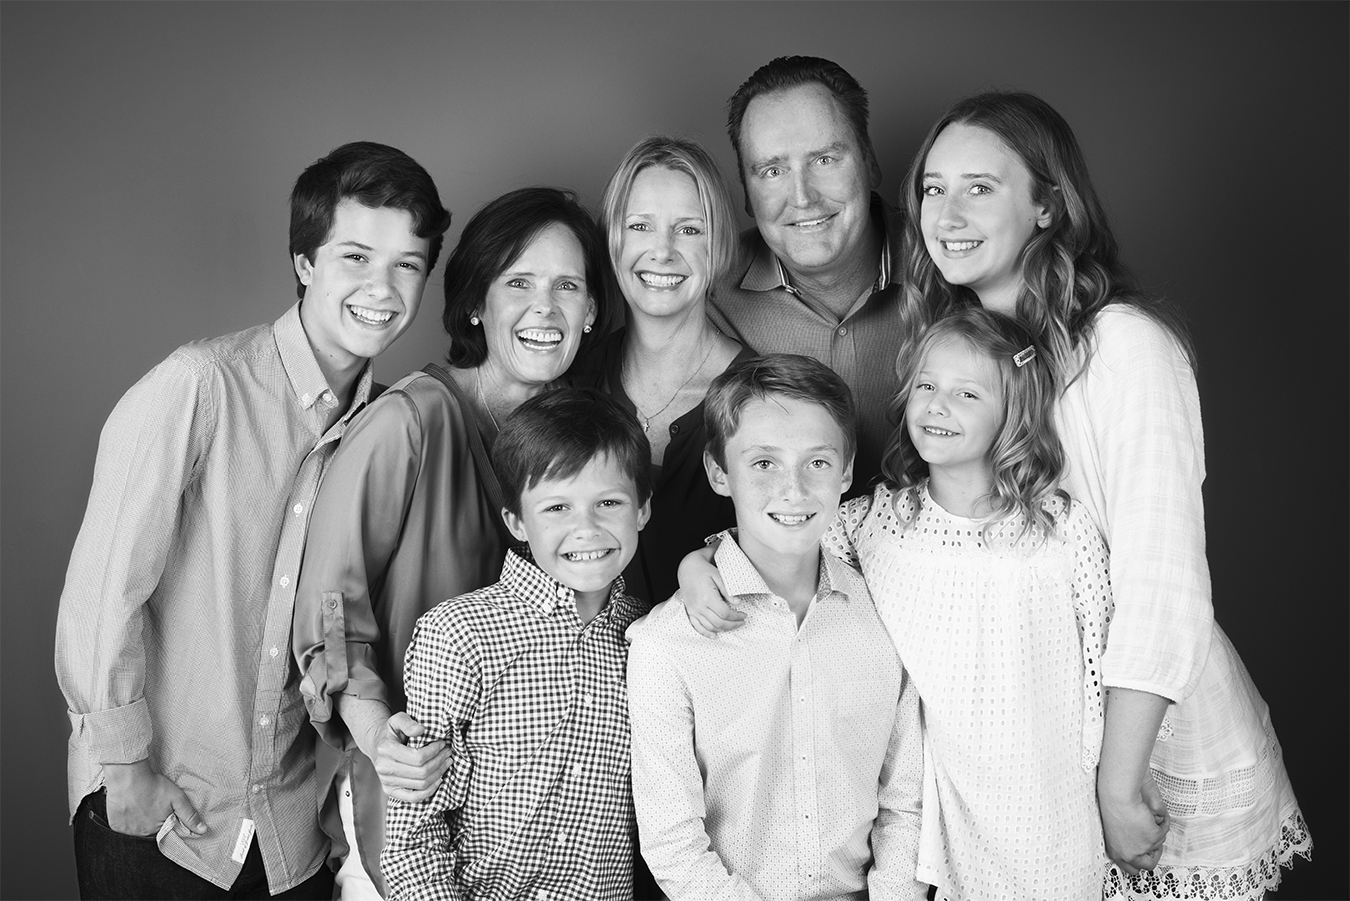 Tammyjo, Meghan and their family